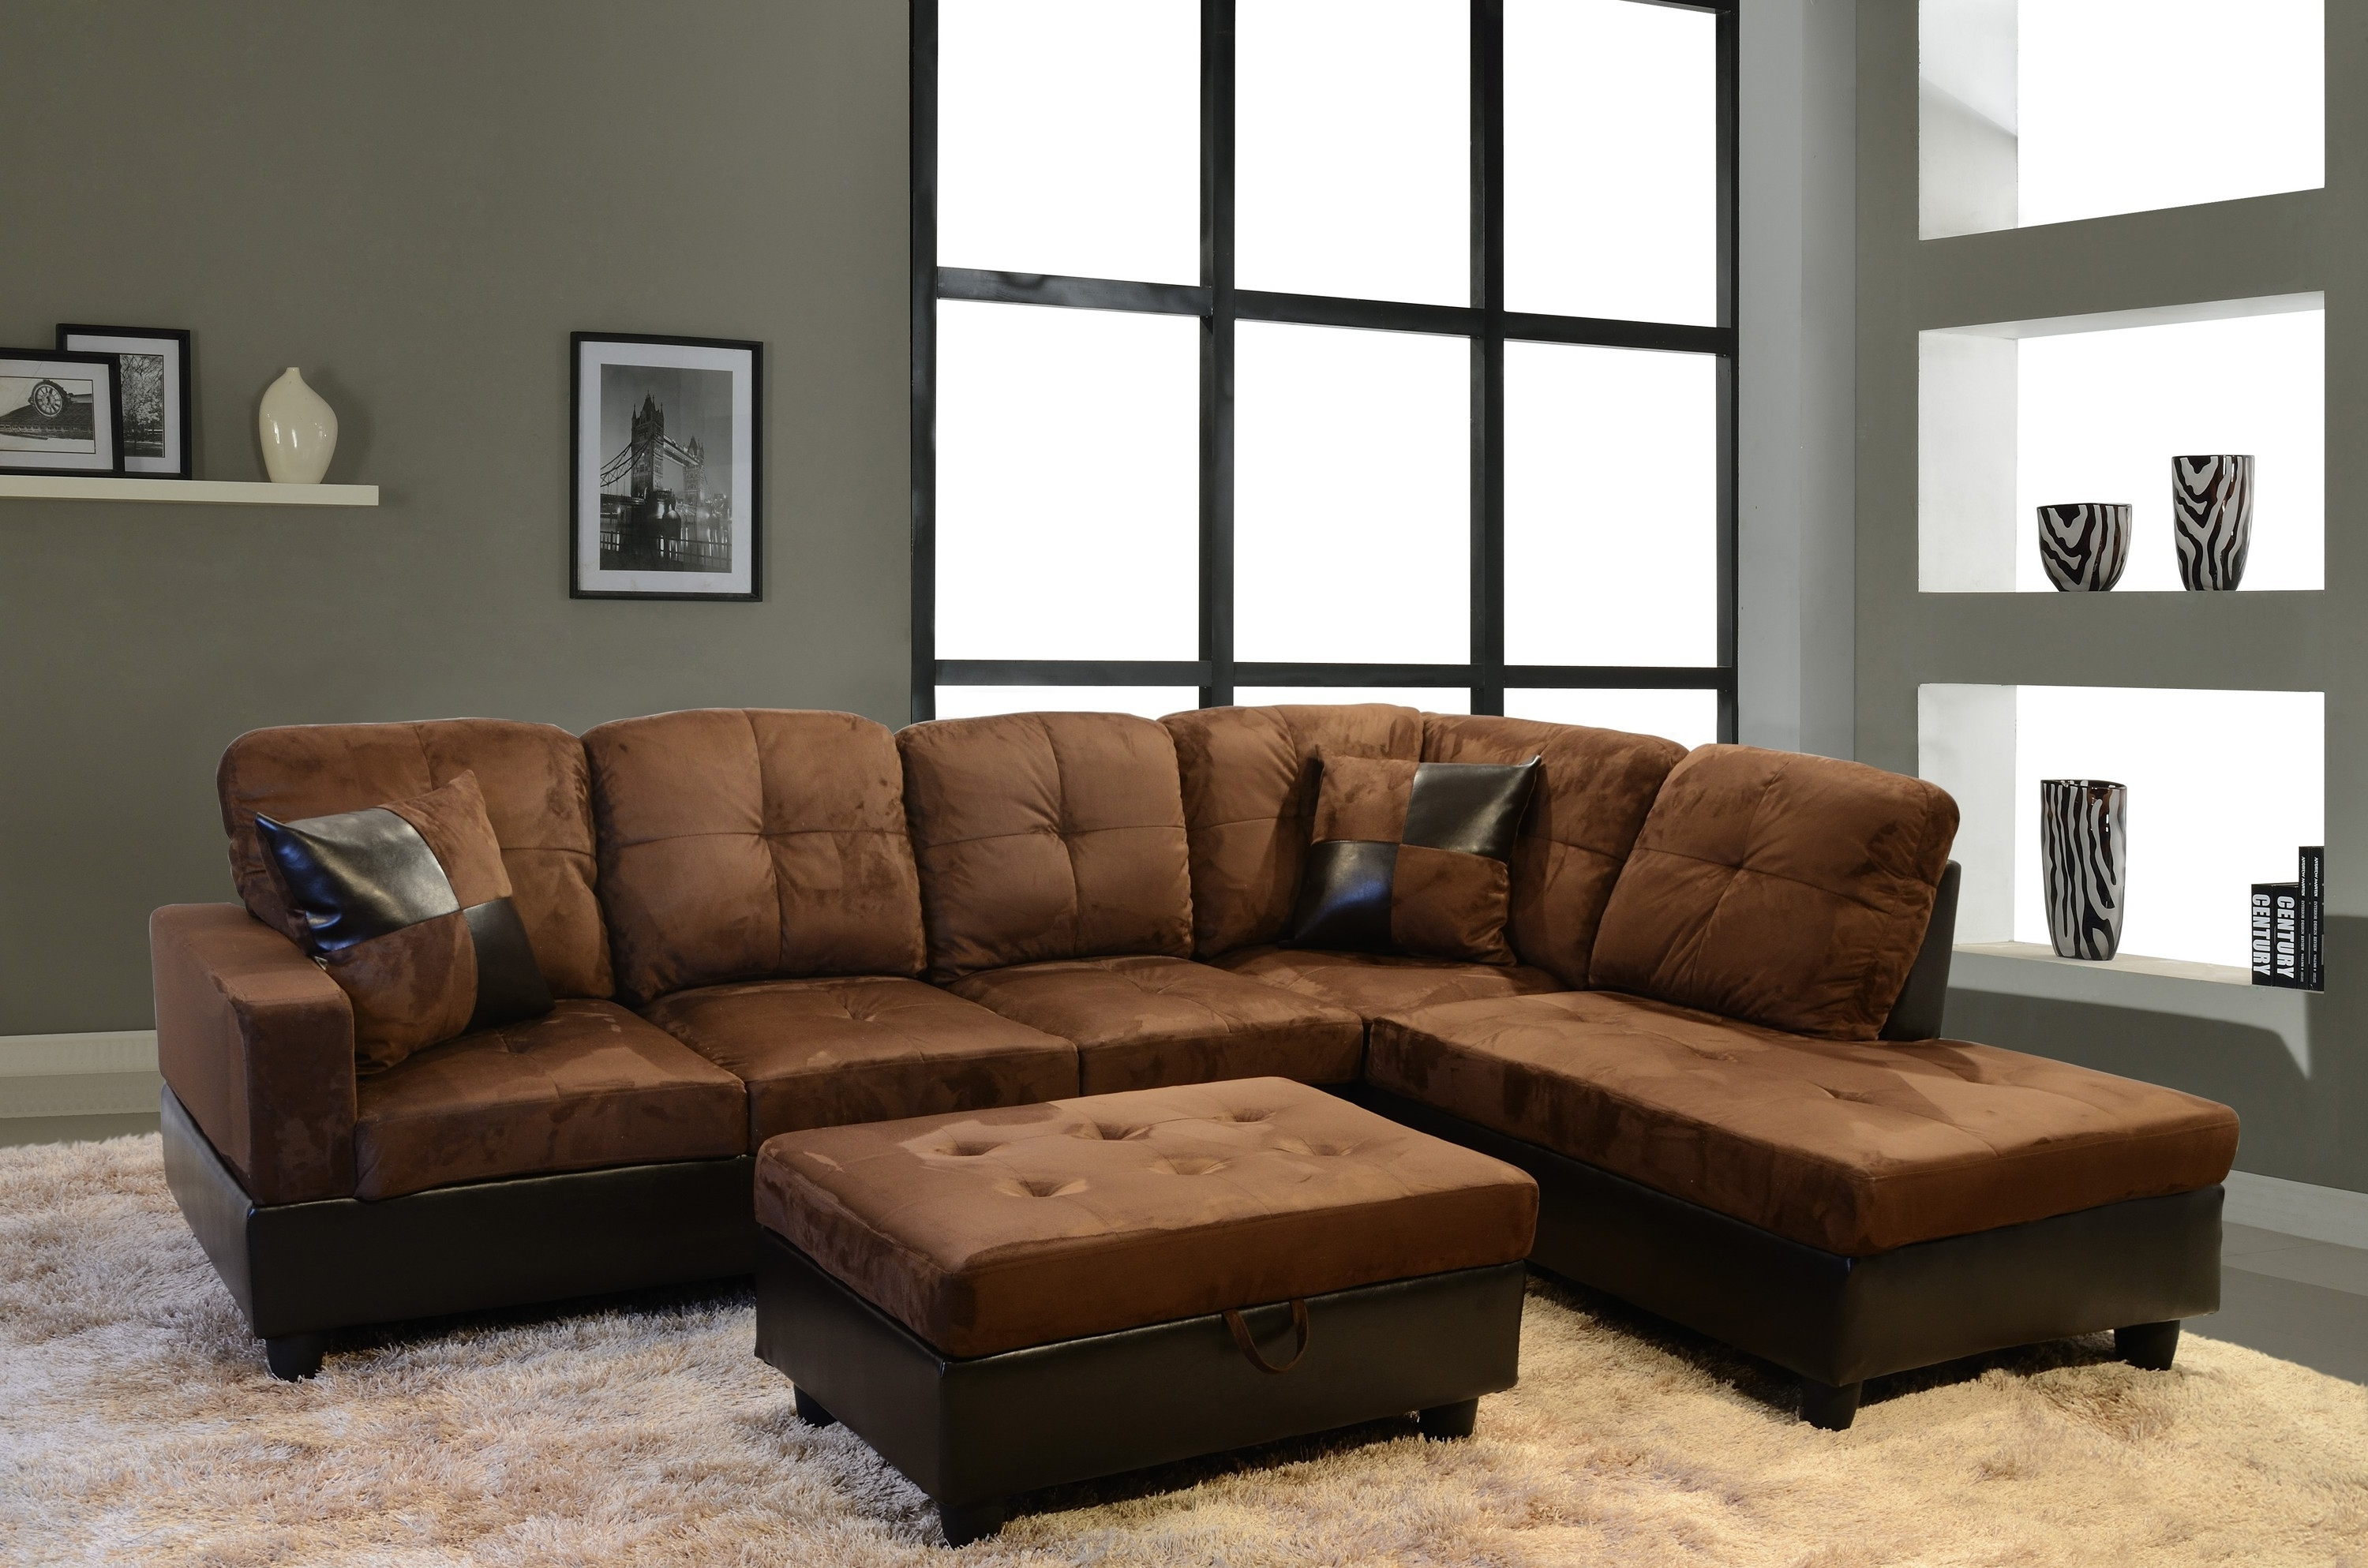 Most Current Sectional Sofas At Sears Within Furniture & Rug: Cheap Sectional Couches For Home Furniture Idea (View 5 of 20)